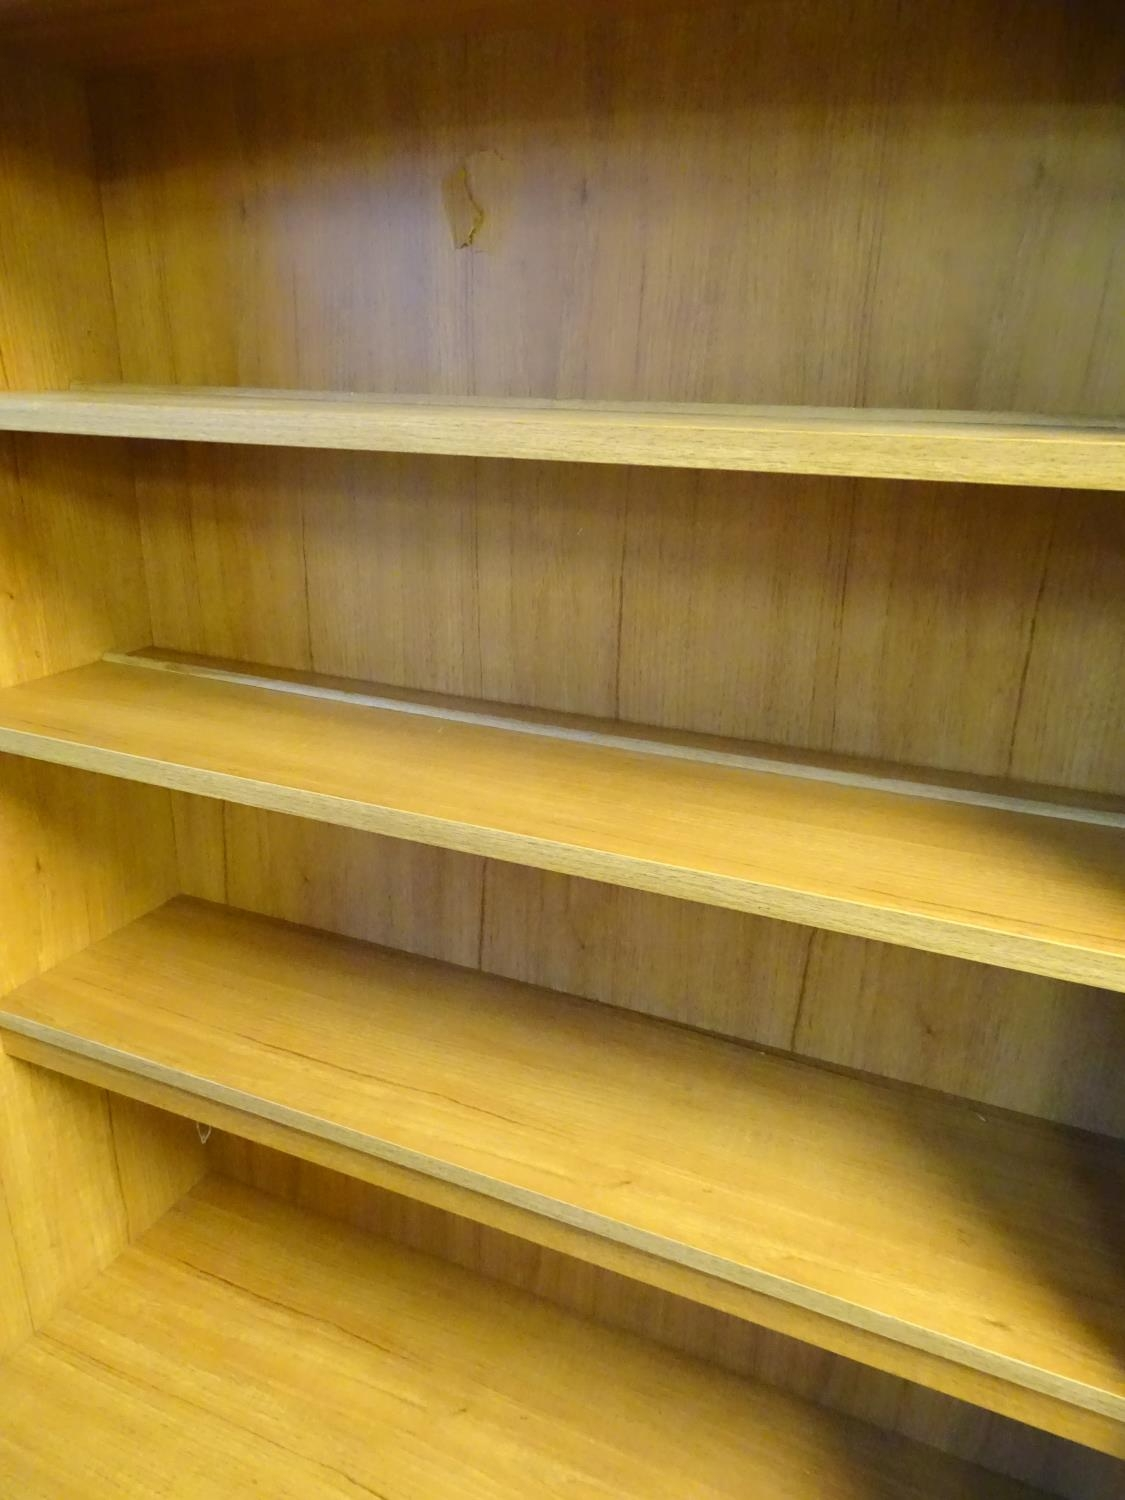 Vintage Retro, Mid Century: a Schreiber dresser bookcase, in teak finish with three shelves and - Image 6 of 7